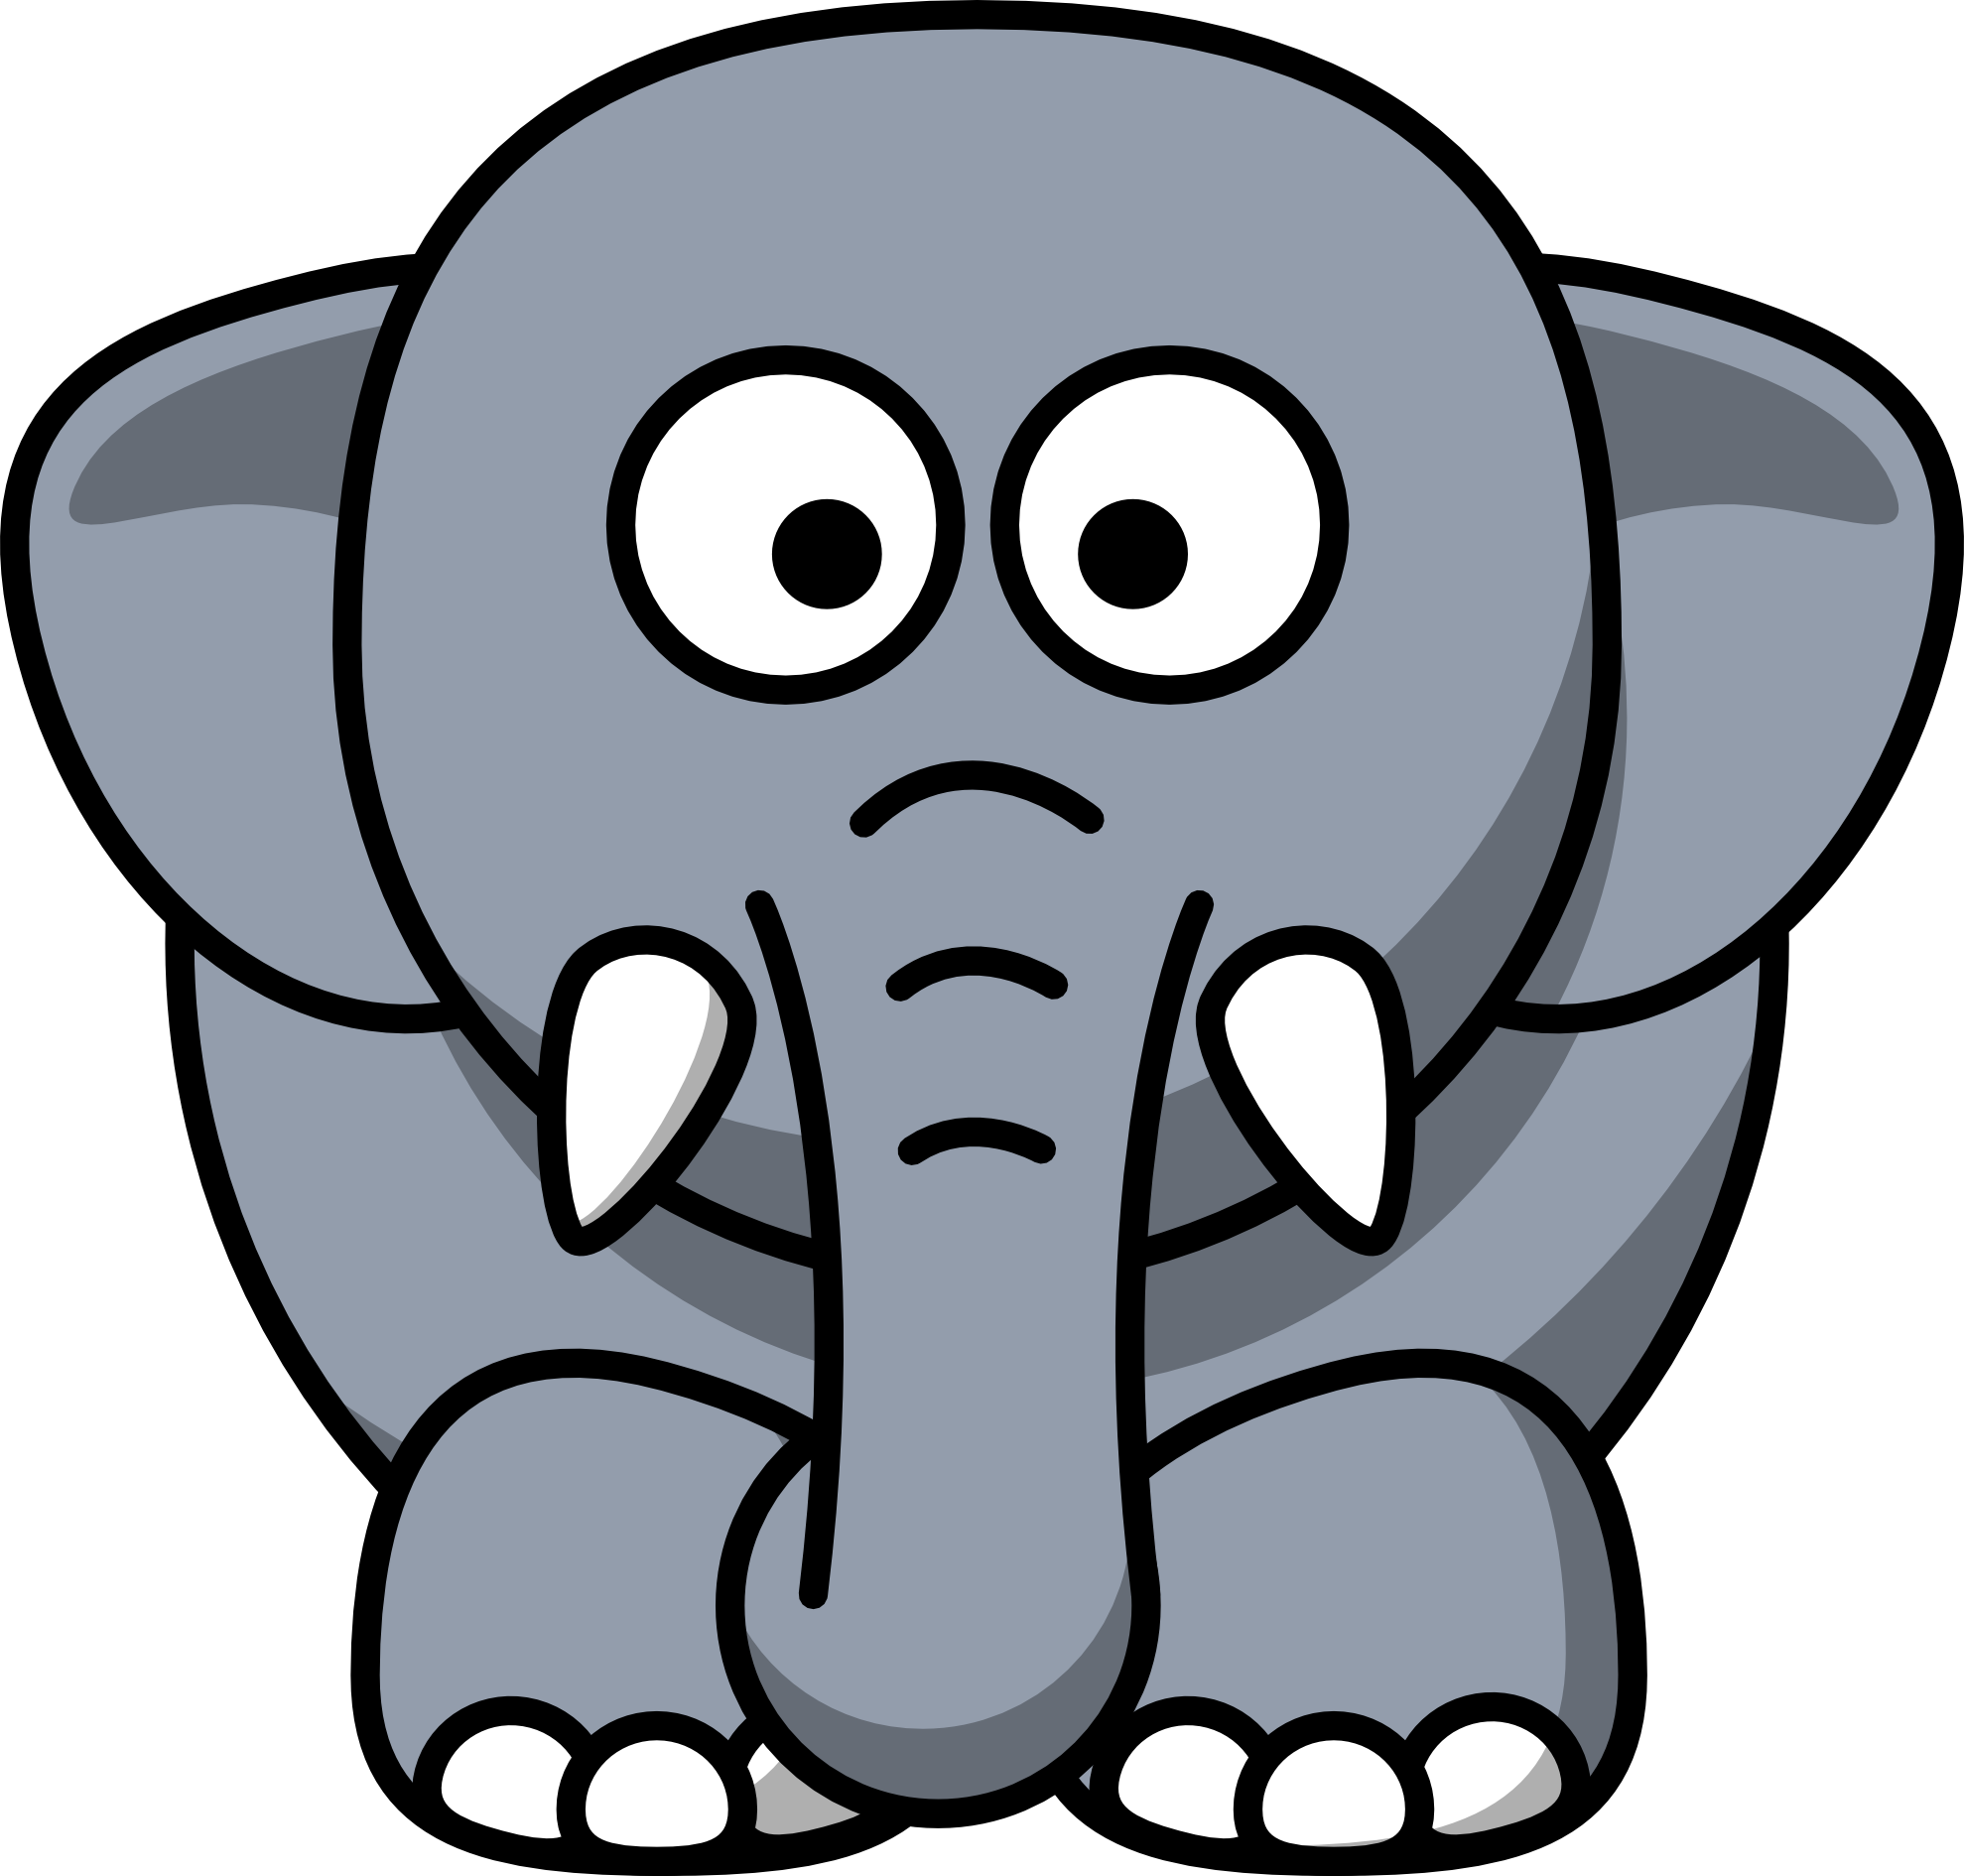 Getting back into working. Elephant clip art easy image black and white library